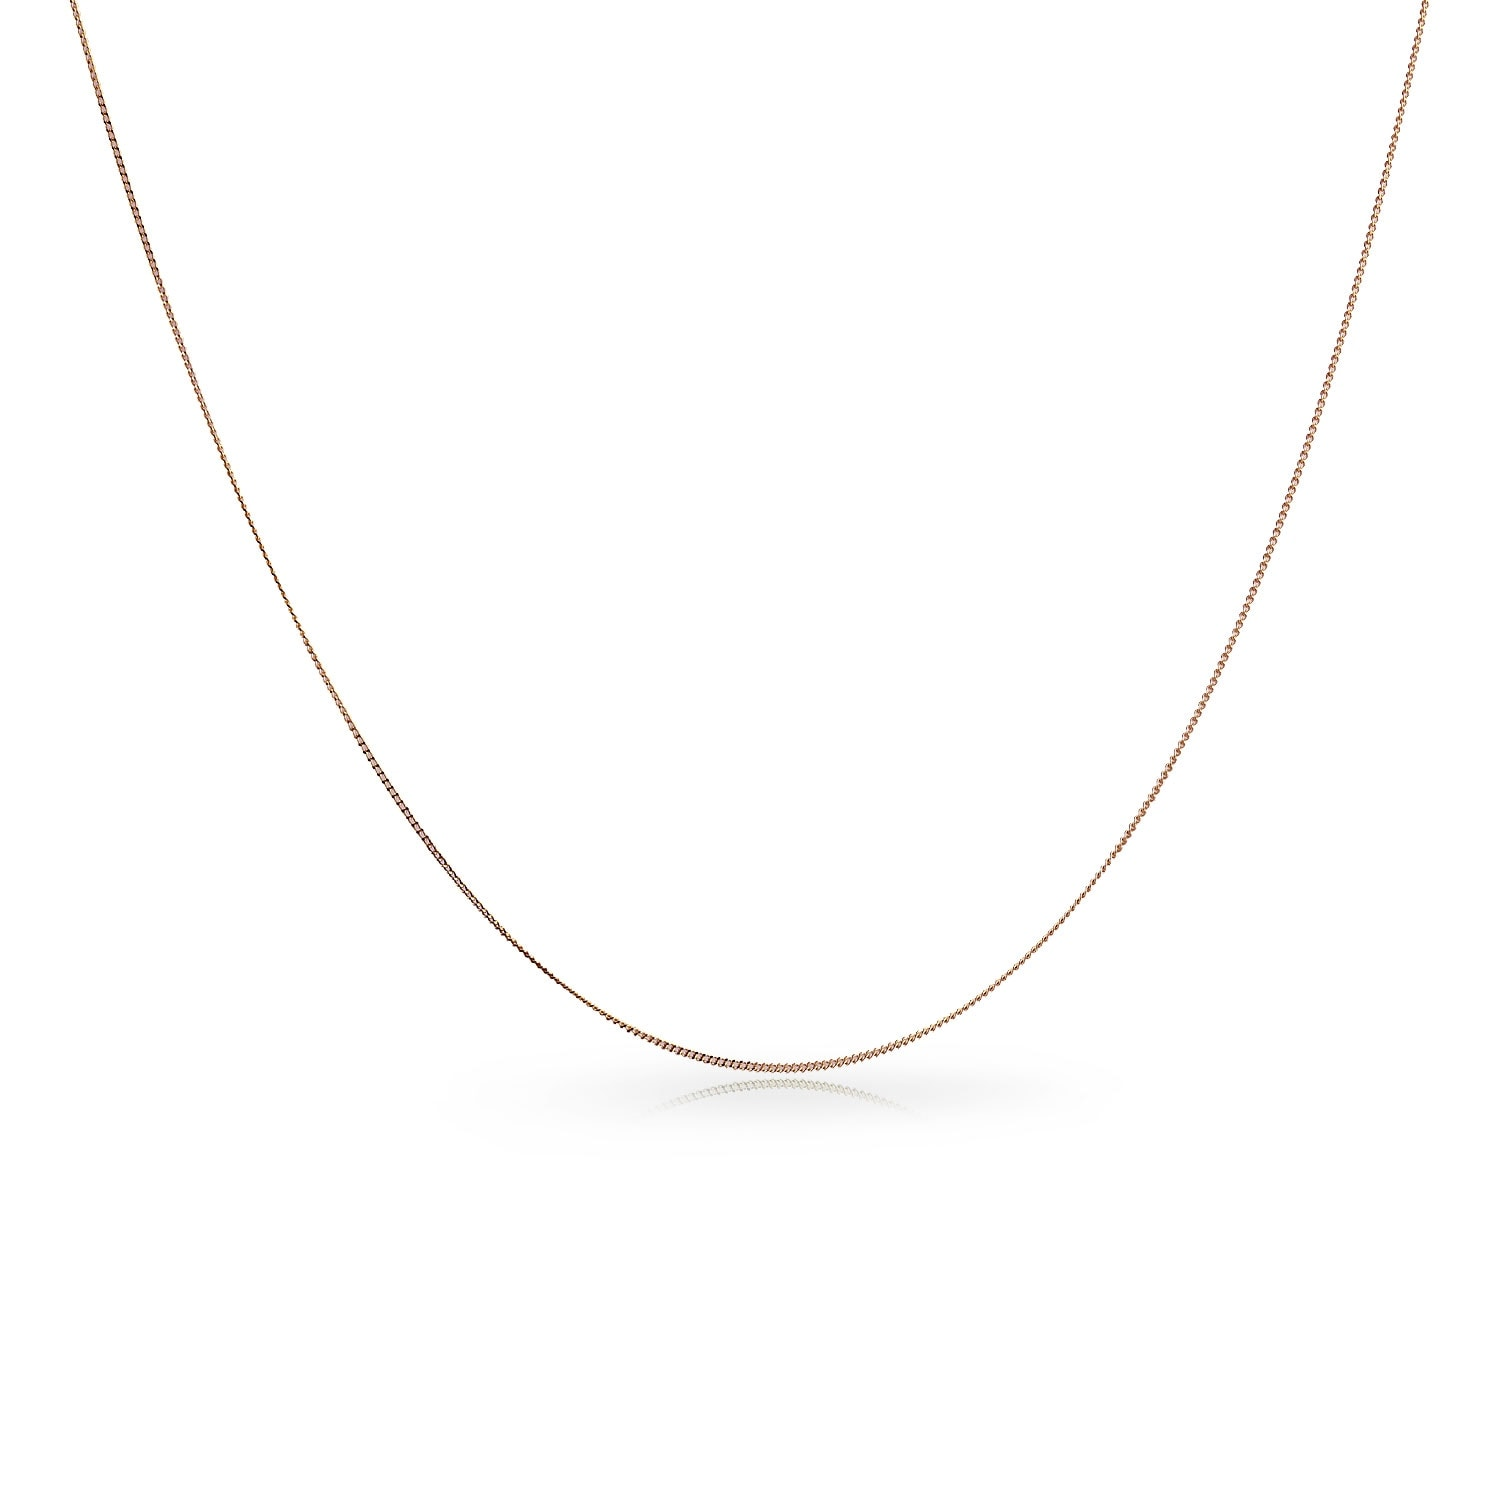 14k Solid White Gold 1.5mm Italy Wheat Chain  Necklace 16 18 20 22 24Inch